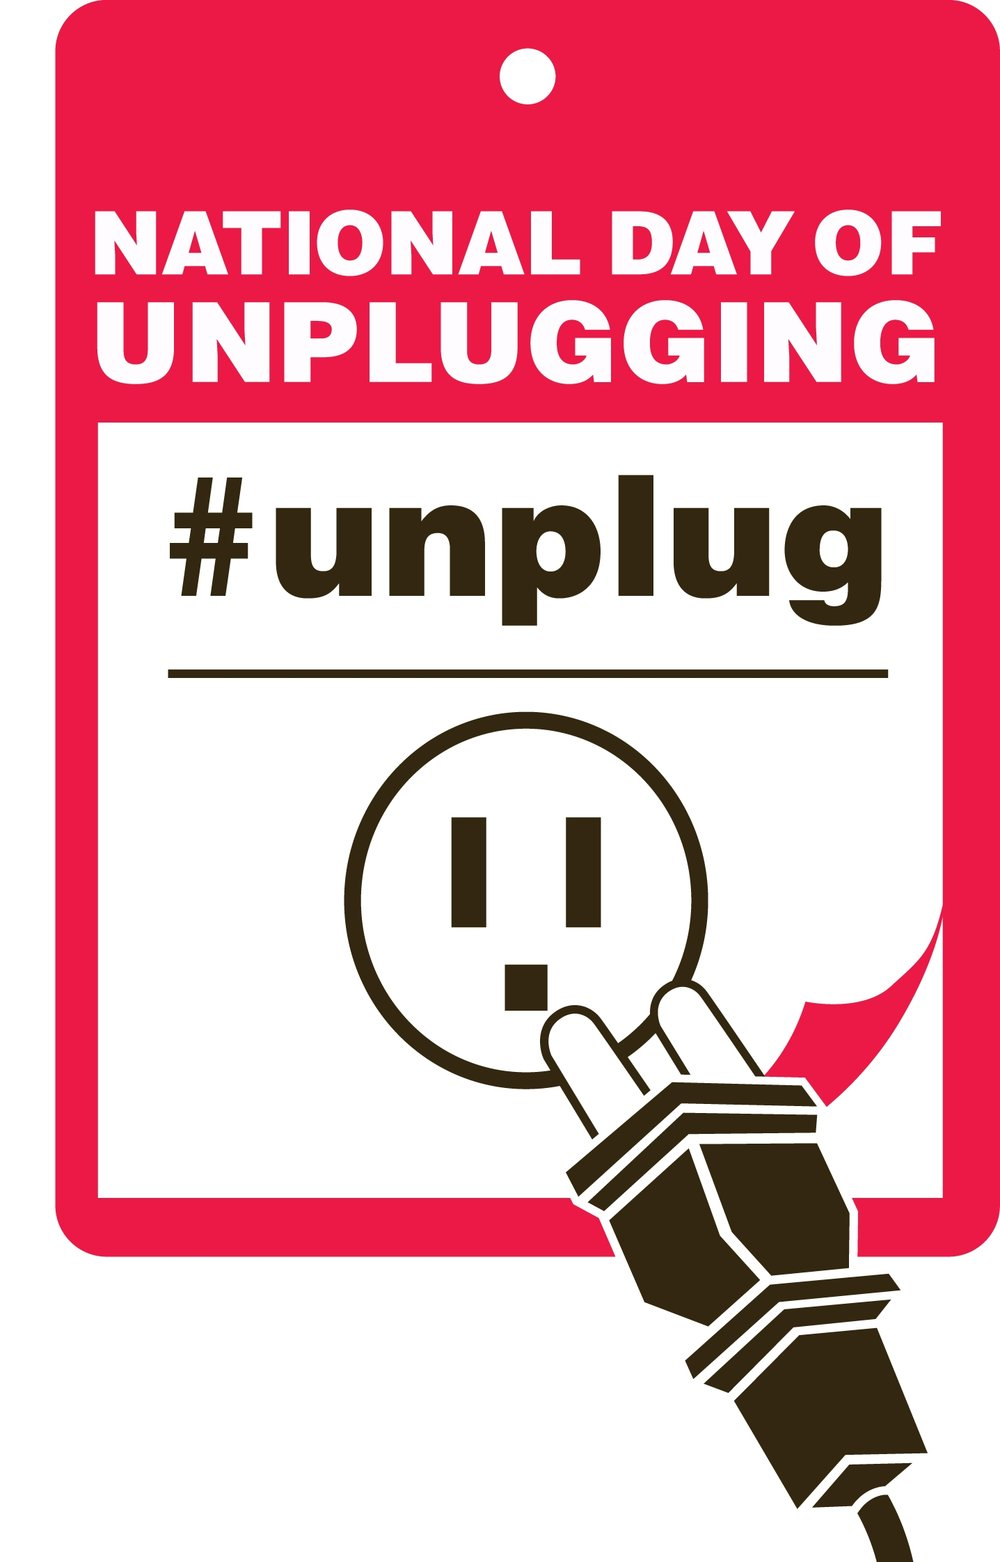 Unplug_logo_011812_outlines.jpg